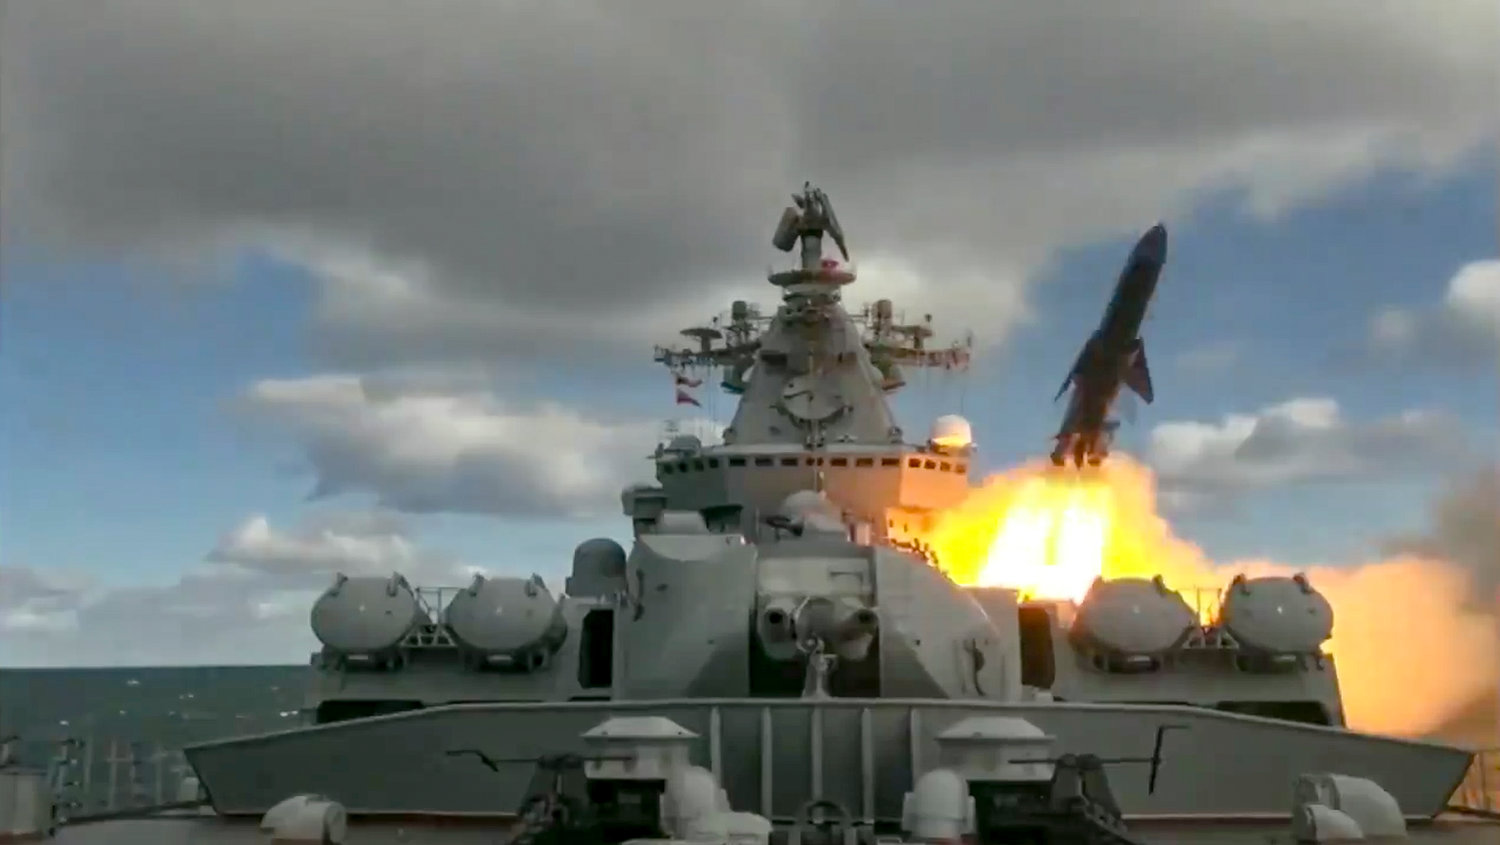 Russian navy conducts major war games in Bering Sea | Rome Daily Sentinel